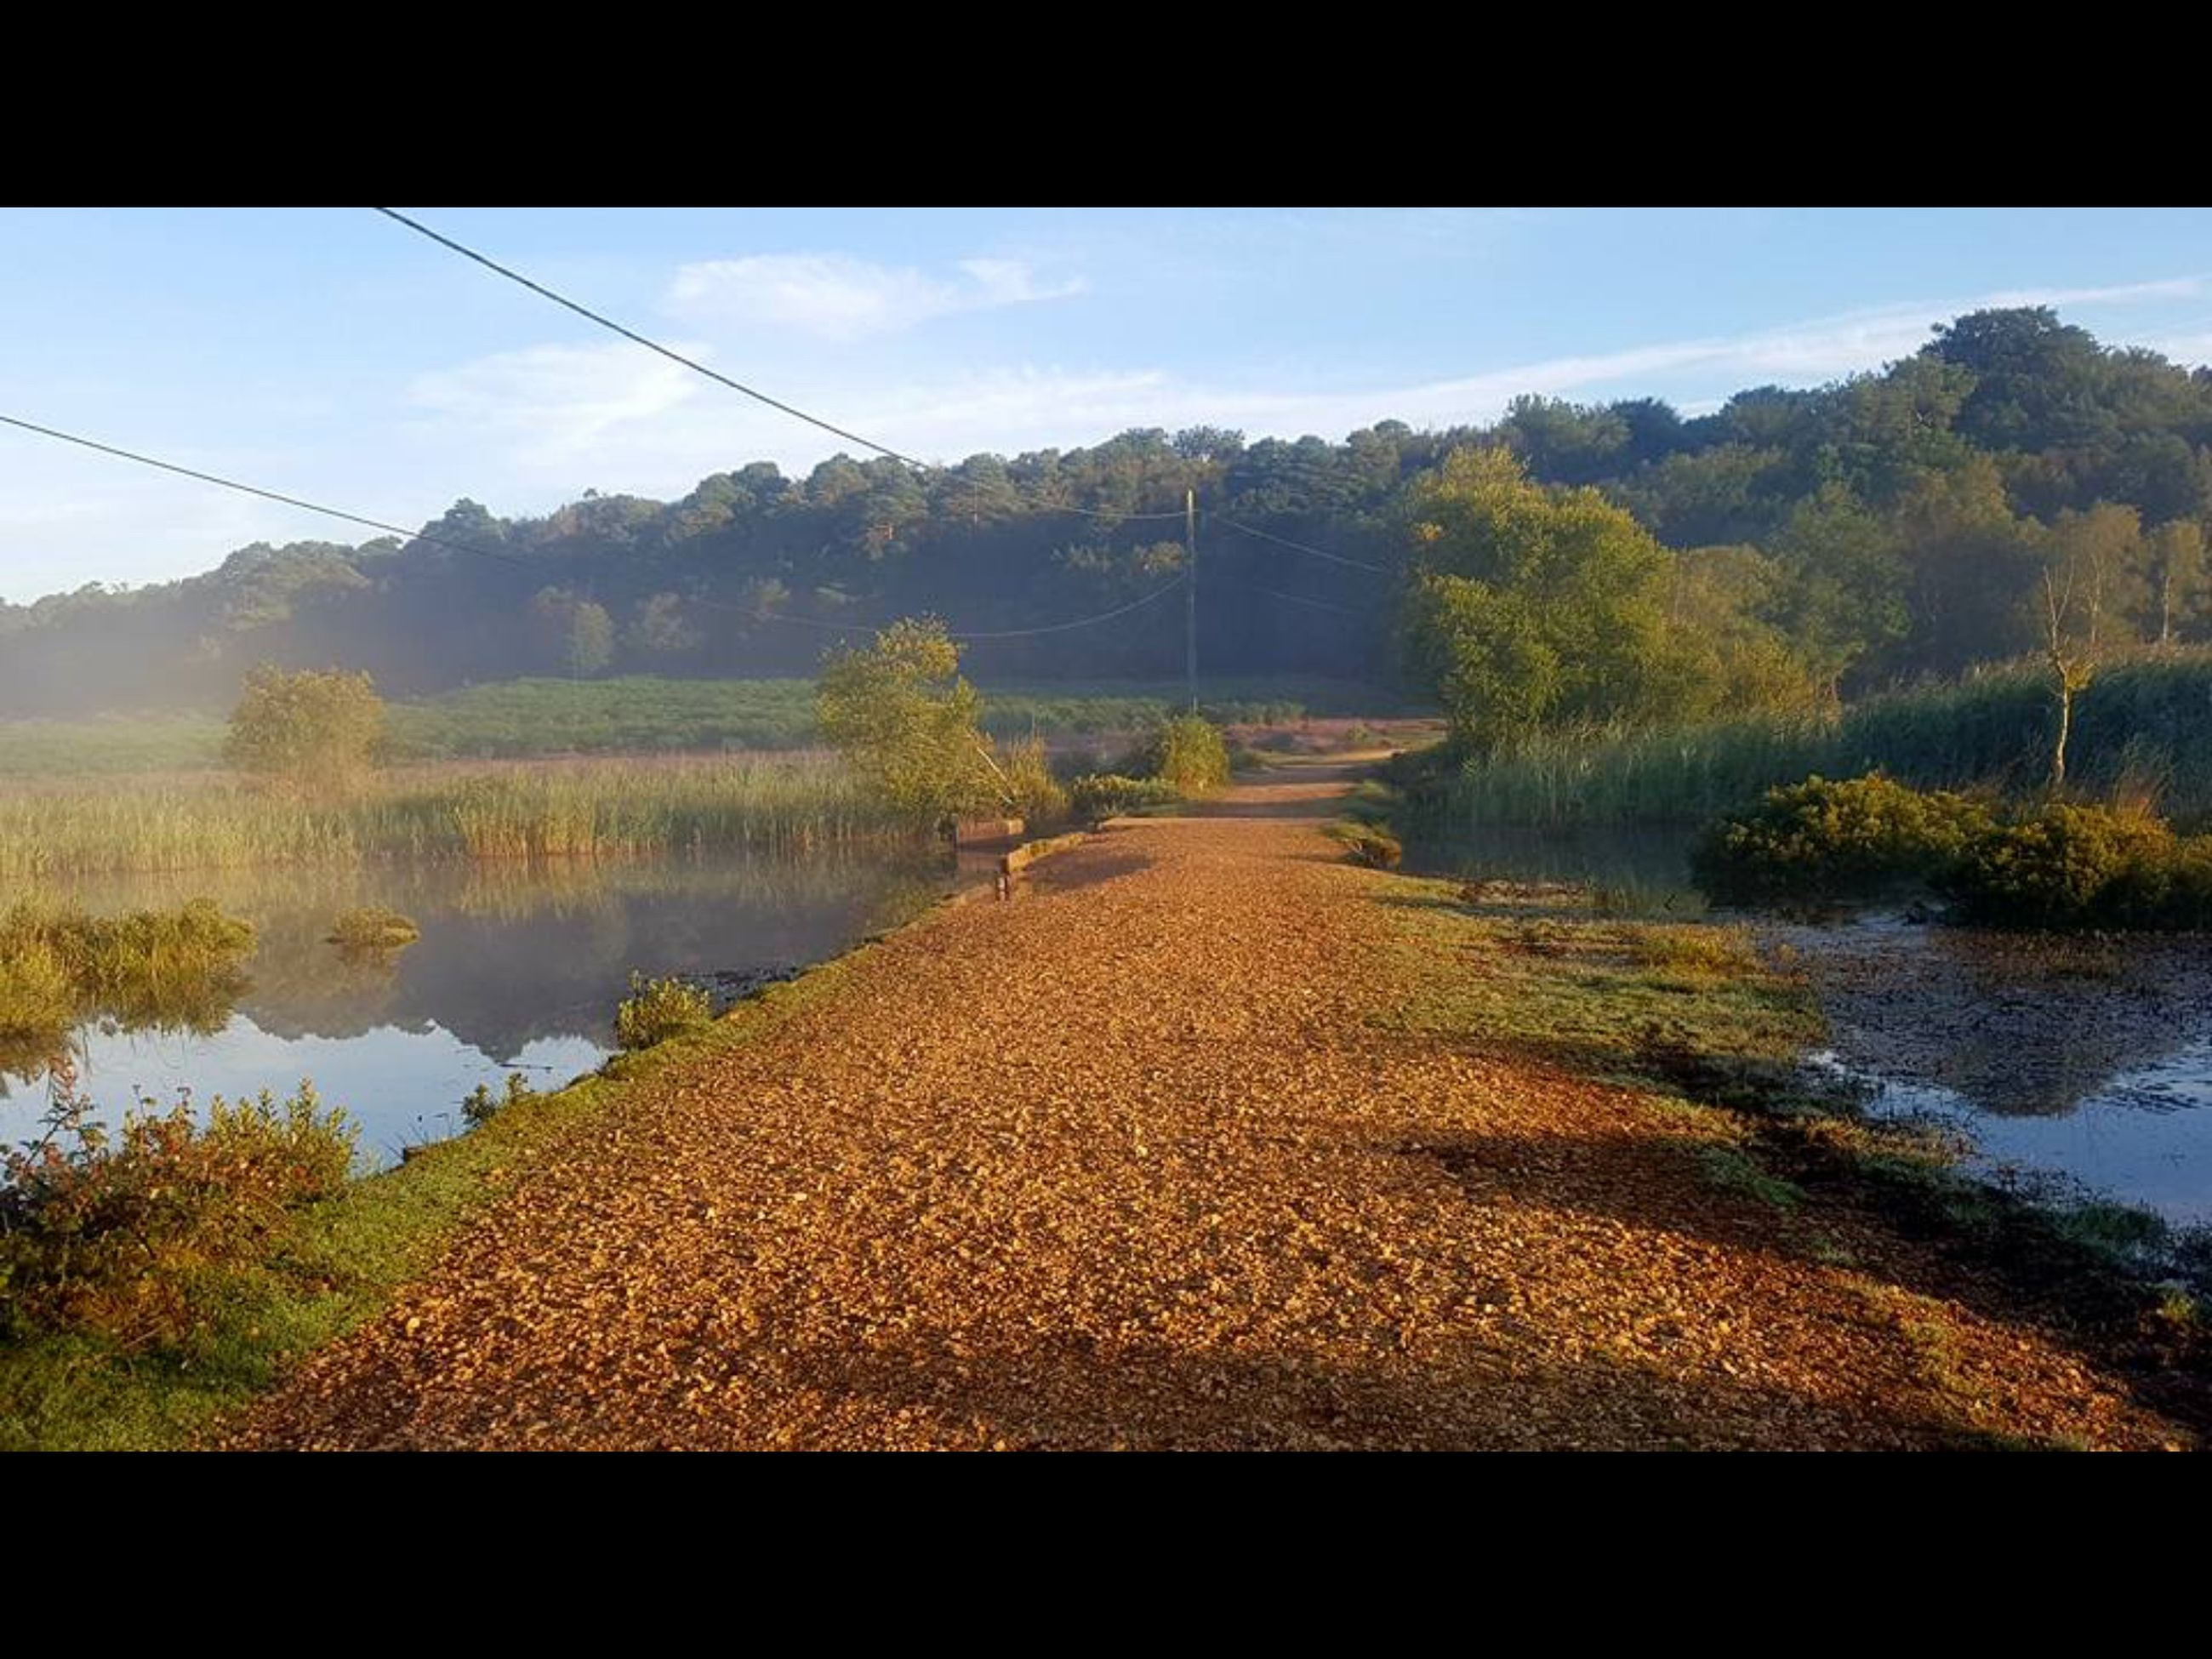 tree, water, tranquil scene, tranquility, lake, the way forward, scenics, sky, day, nature, cable, beauty in nature, long, outdoors, rural scene, non-urban scene, calm, tourism, footpath, no people, power line, lens flare